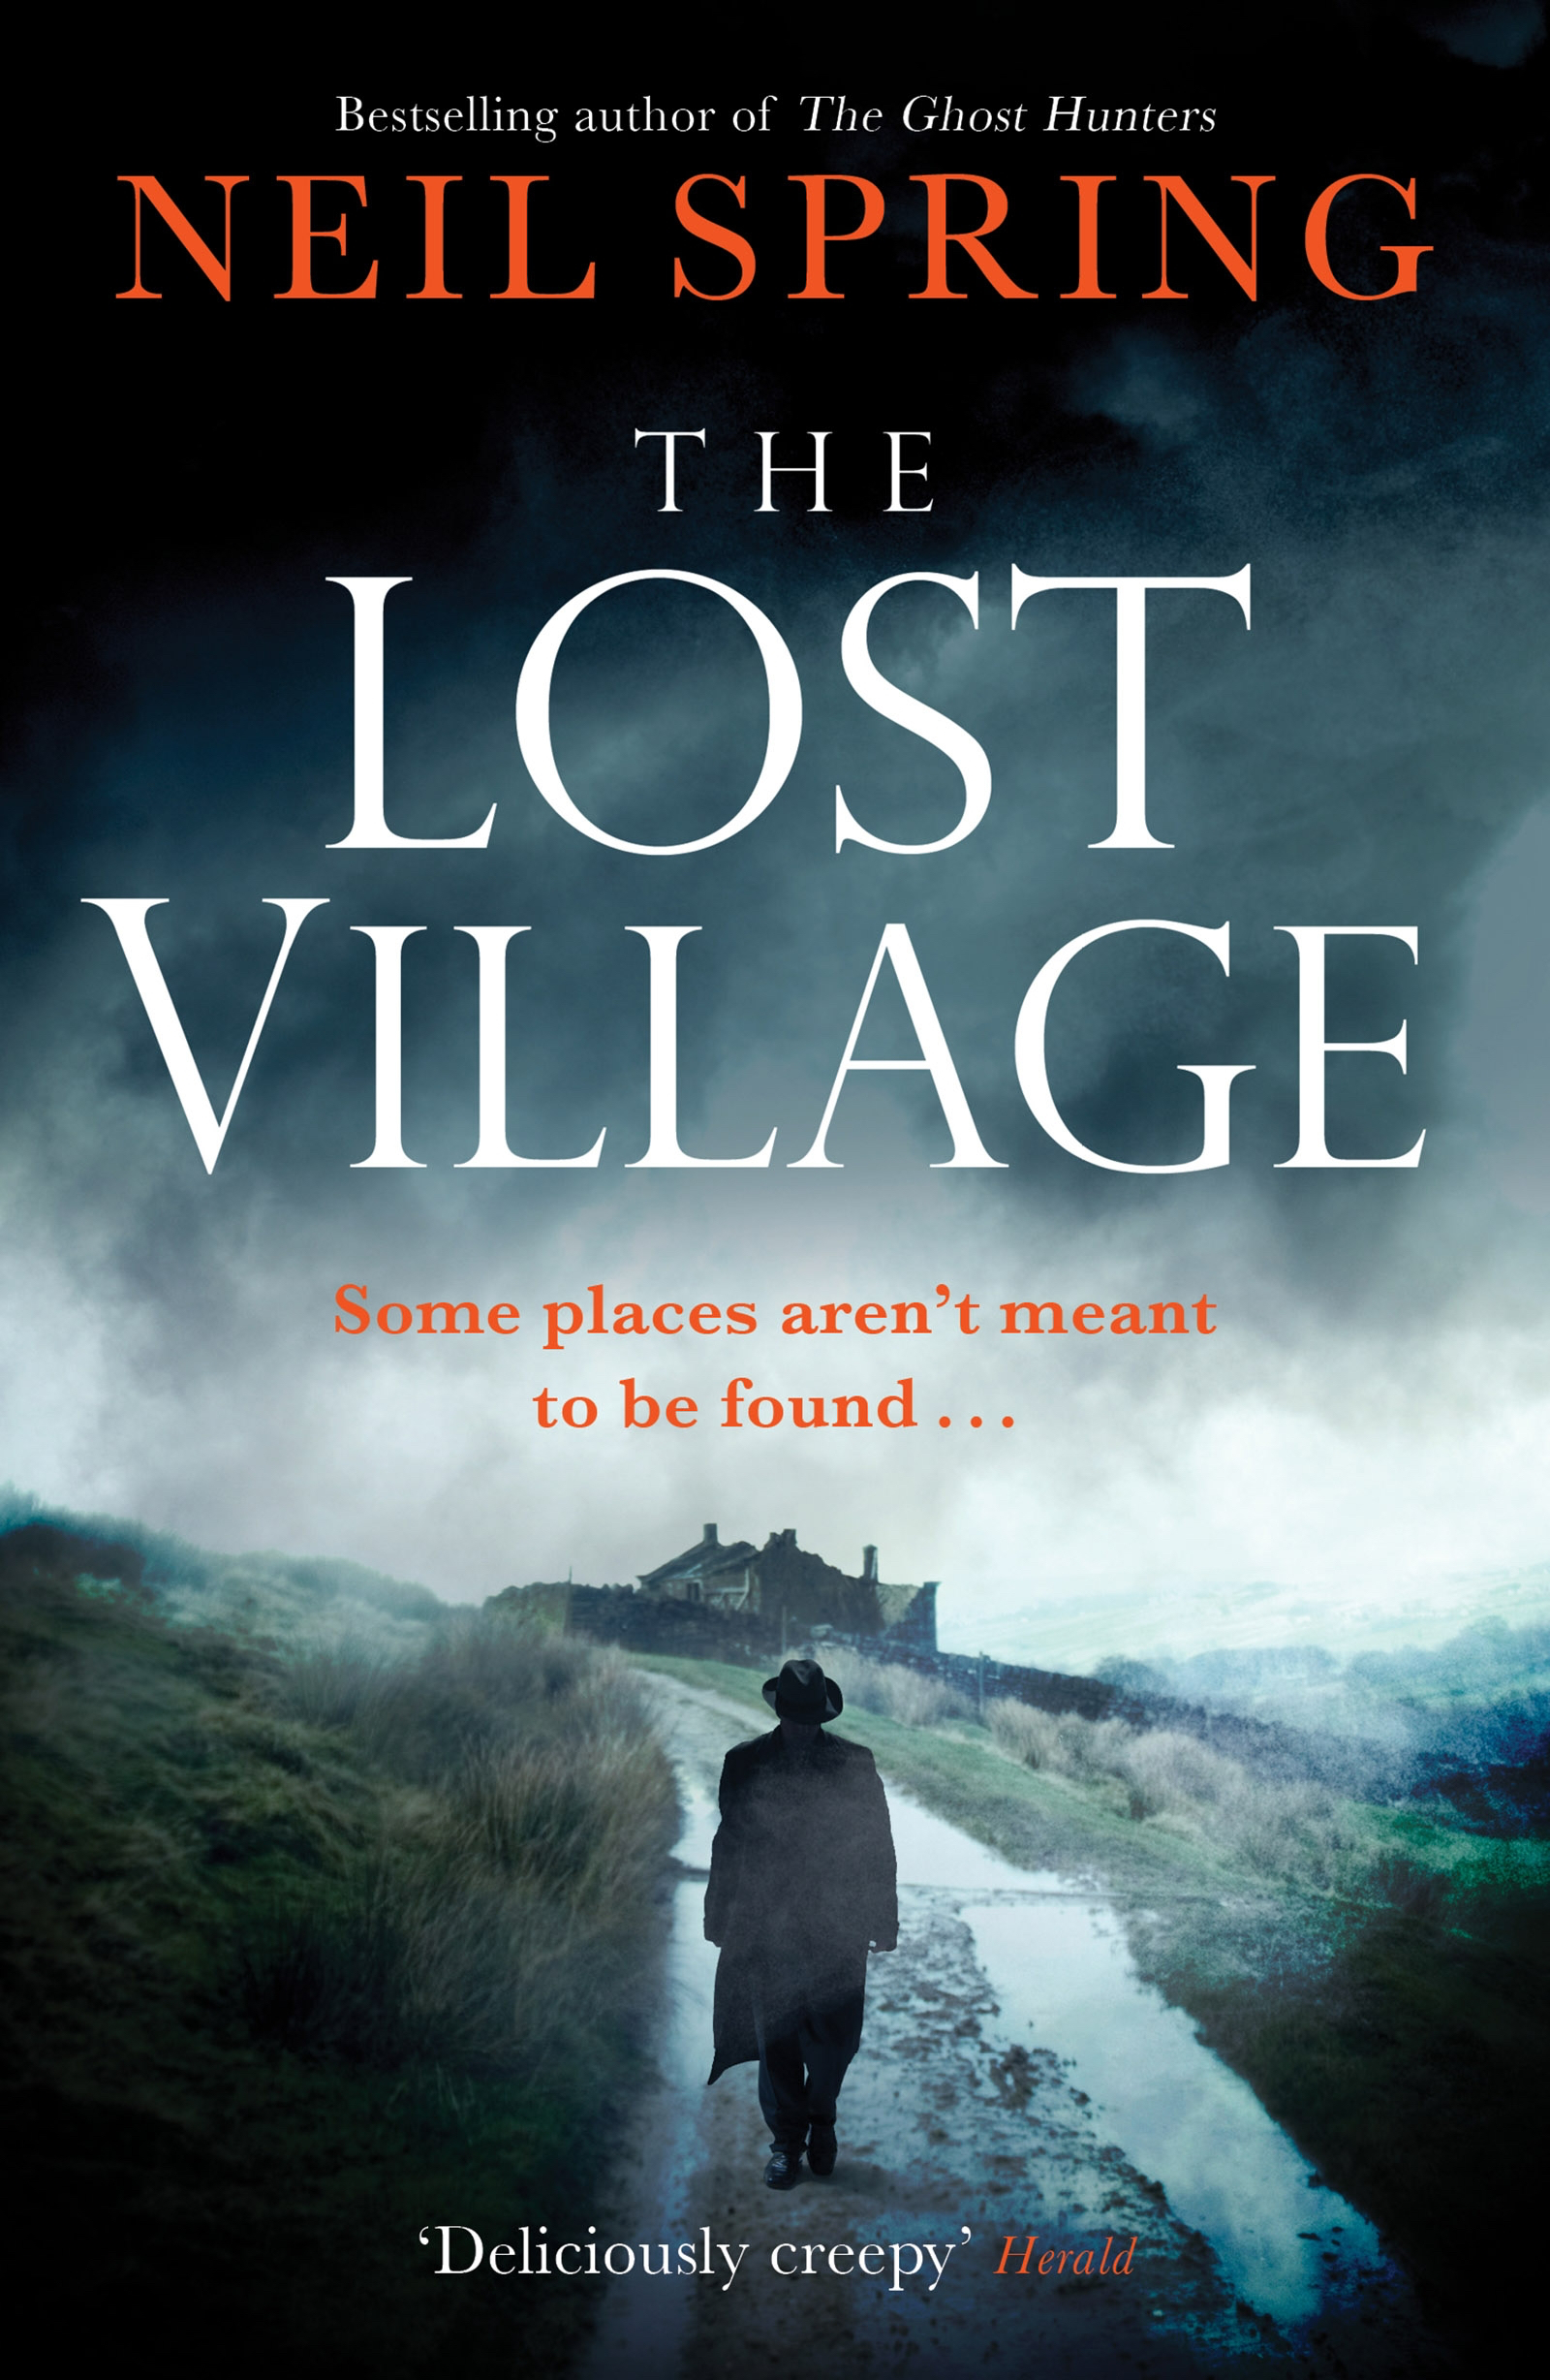 The Lost Village, by Neil Spring, is about the Salisbury Plain village of Imber